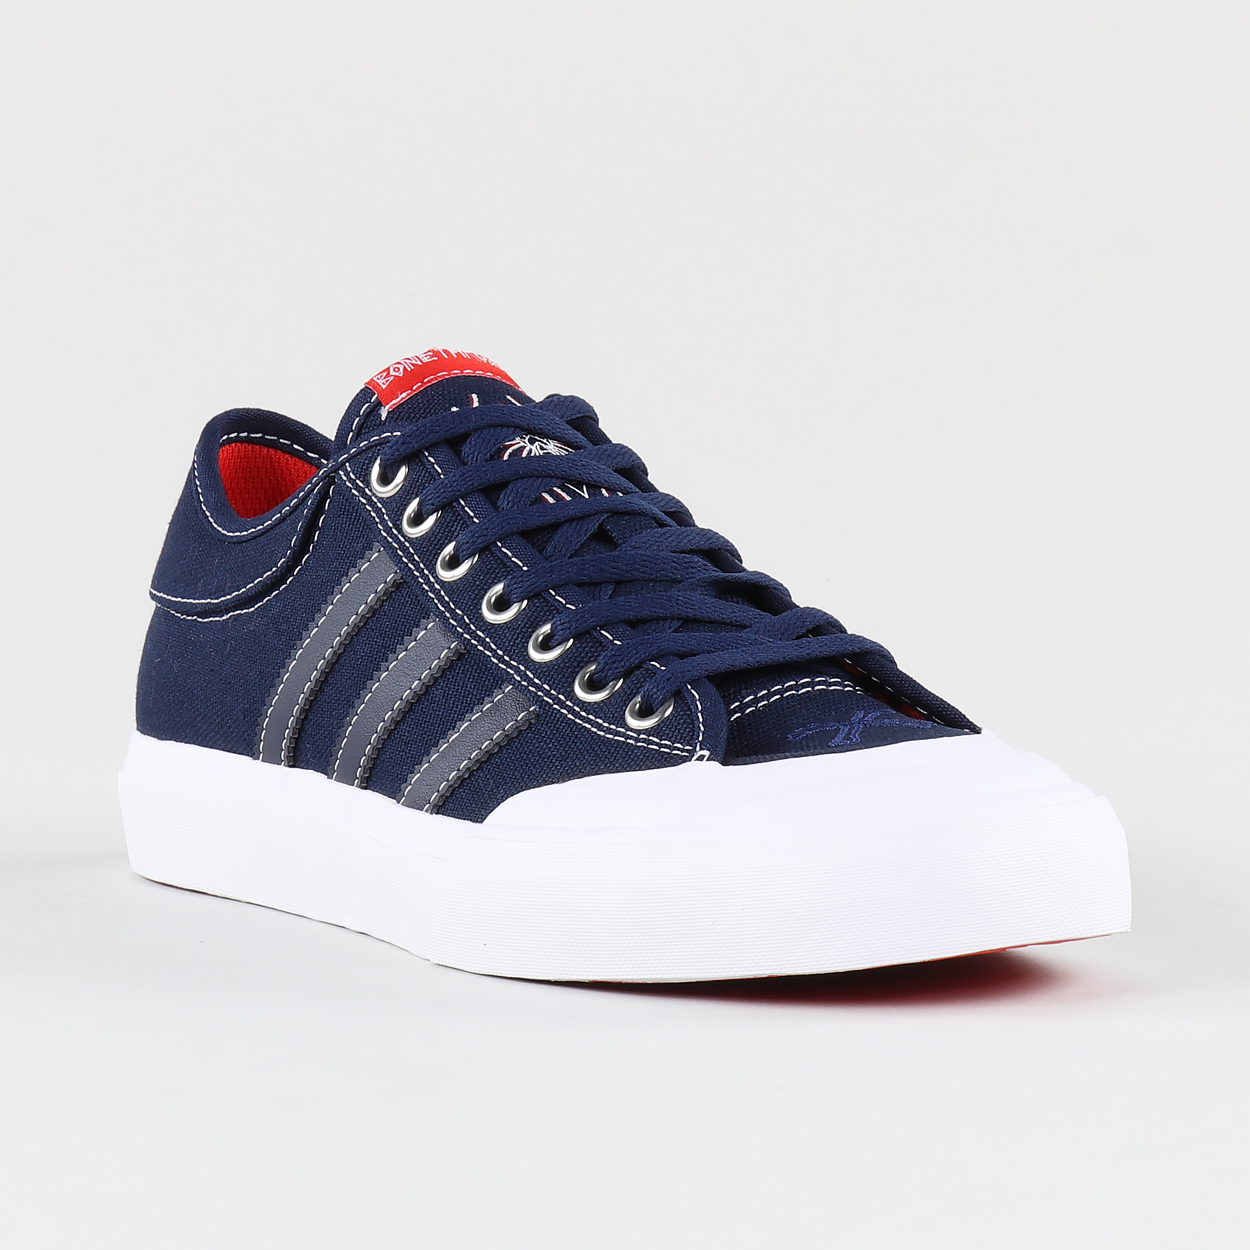 new style 970e3 a3aa7 Adidas x Bonethrower Colab Matchcourt Shoes Navy White Red ...